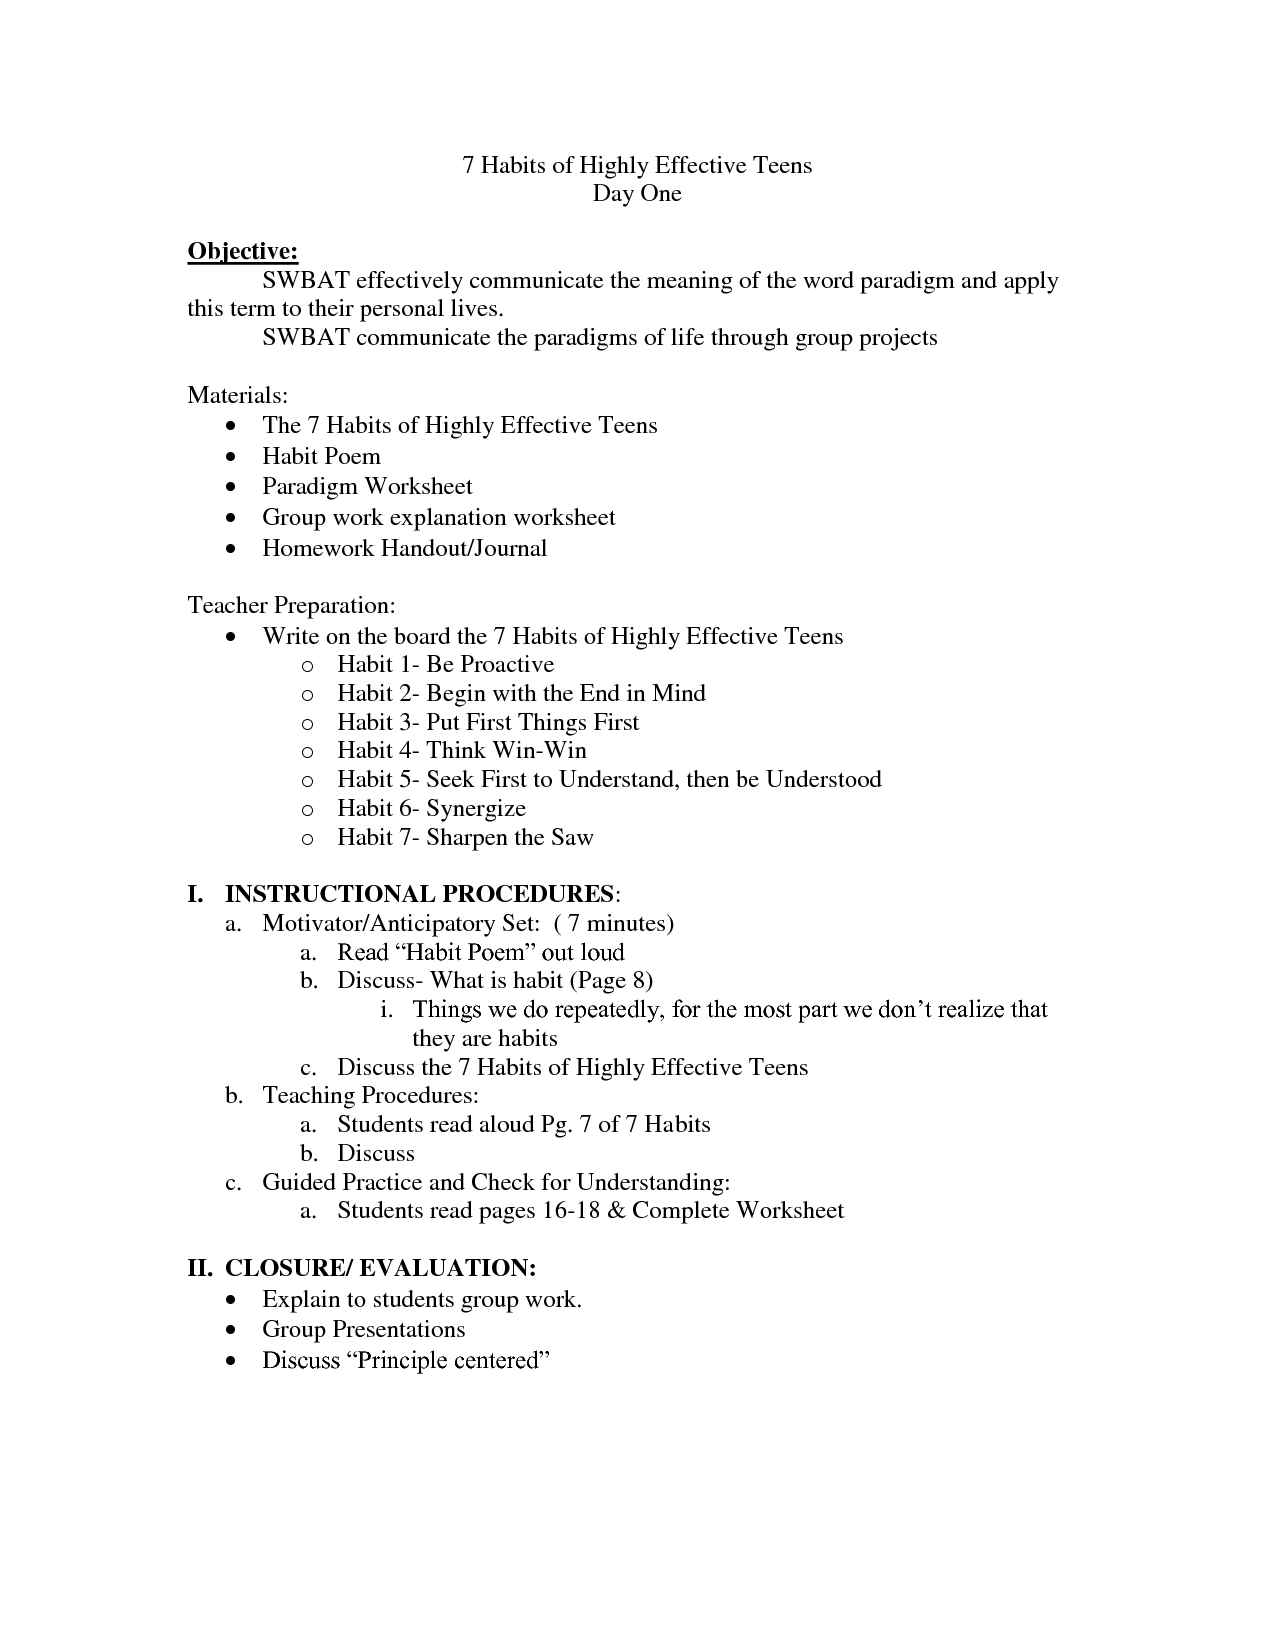 7 Habits Worksheet For Teens